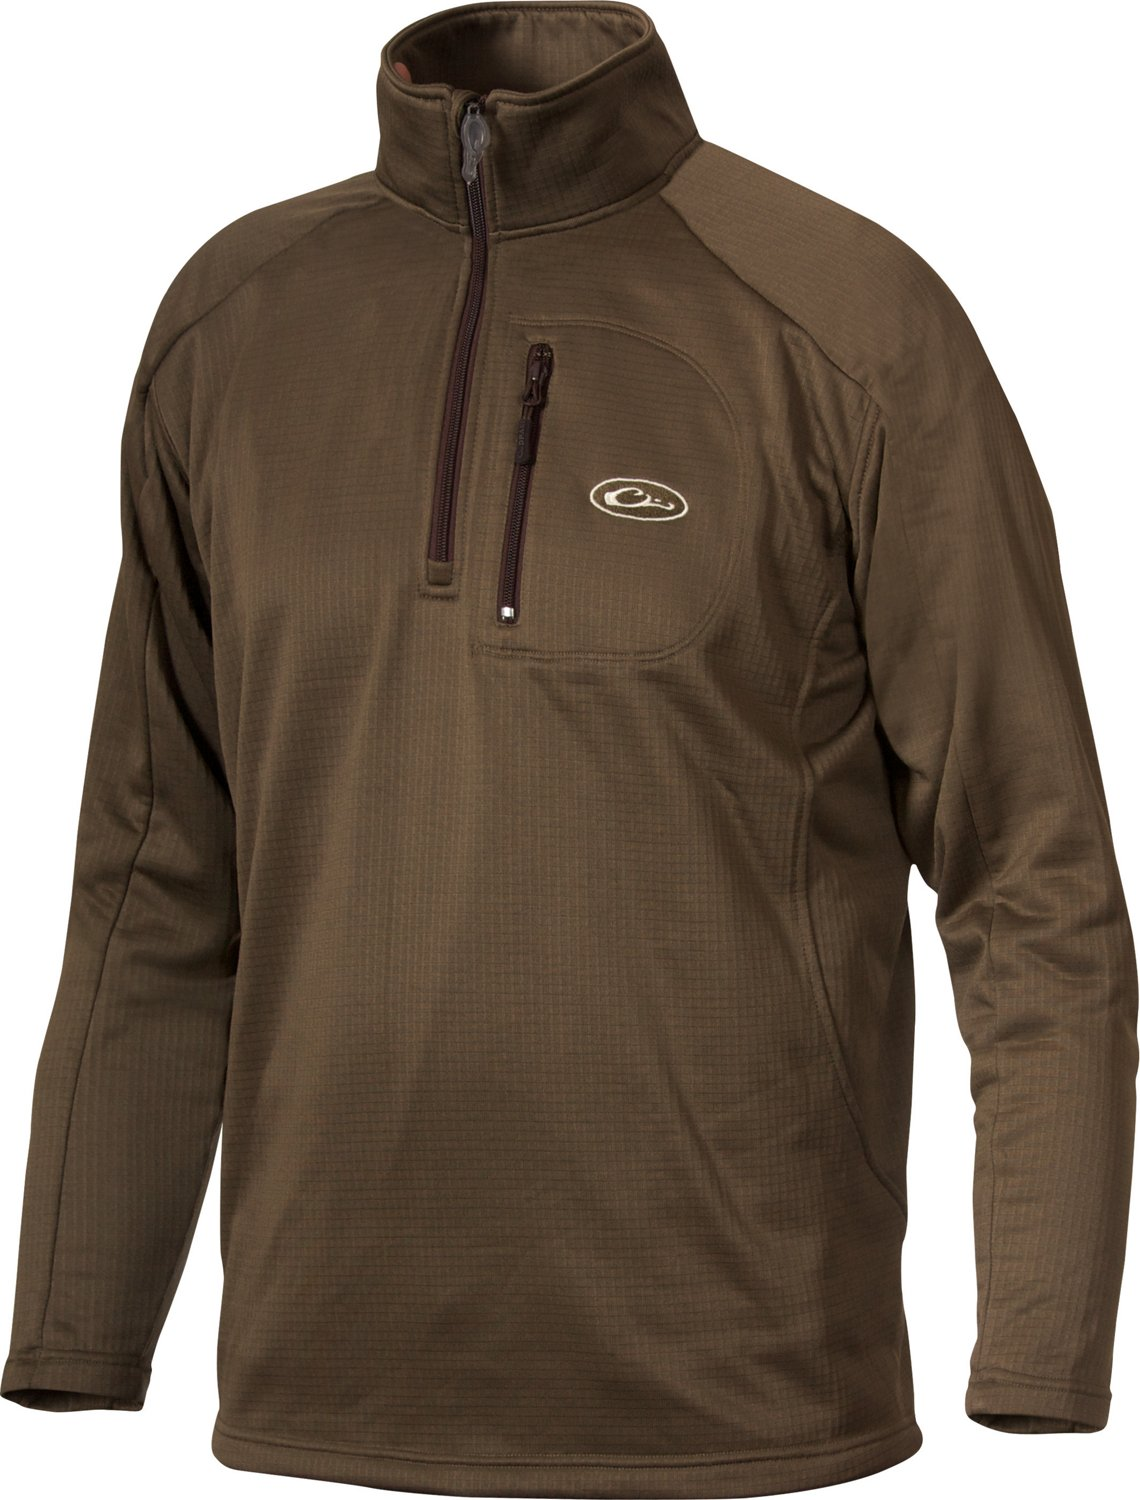 b15ecd28fccd8 Display product reviews for Drake Waterfowl Men's Breathelite 1/4 Zip  Fleece Pullover